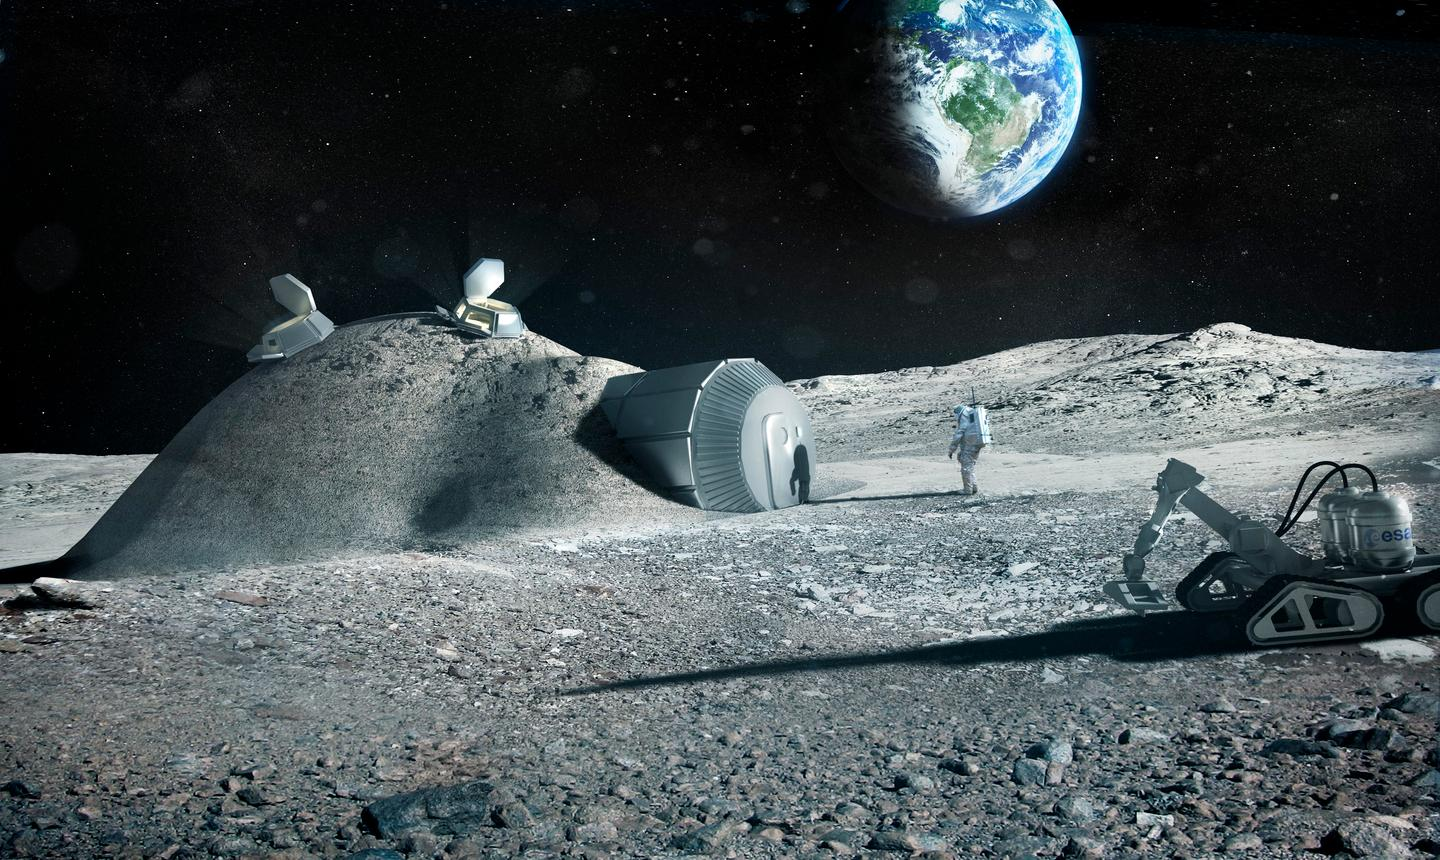 A research consortium set up by the European Space Agency is looking into the possibility of 3D-printing a lunar base (Image: Foster + Partners)